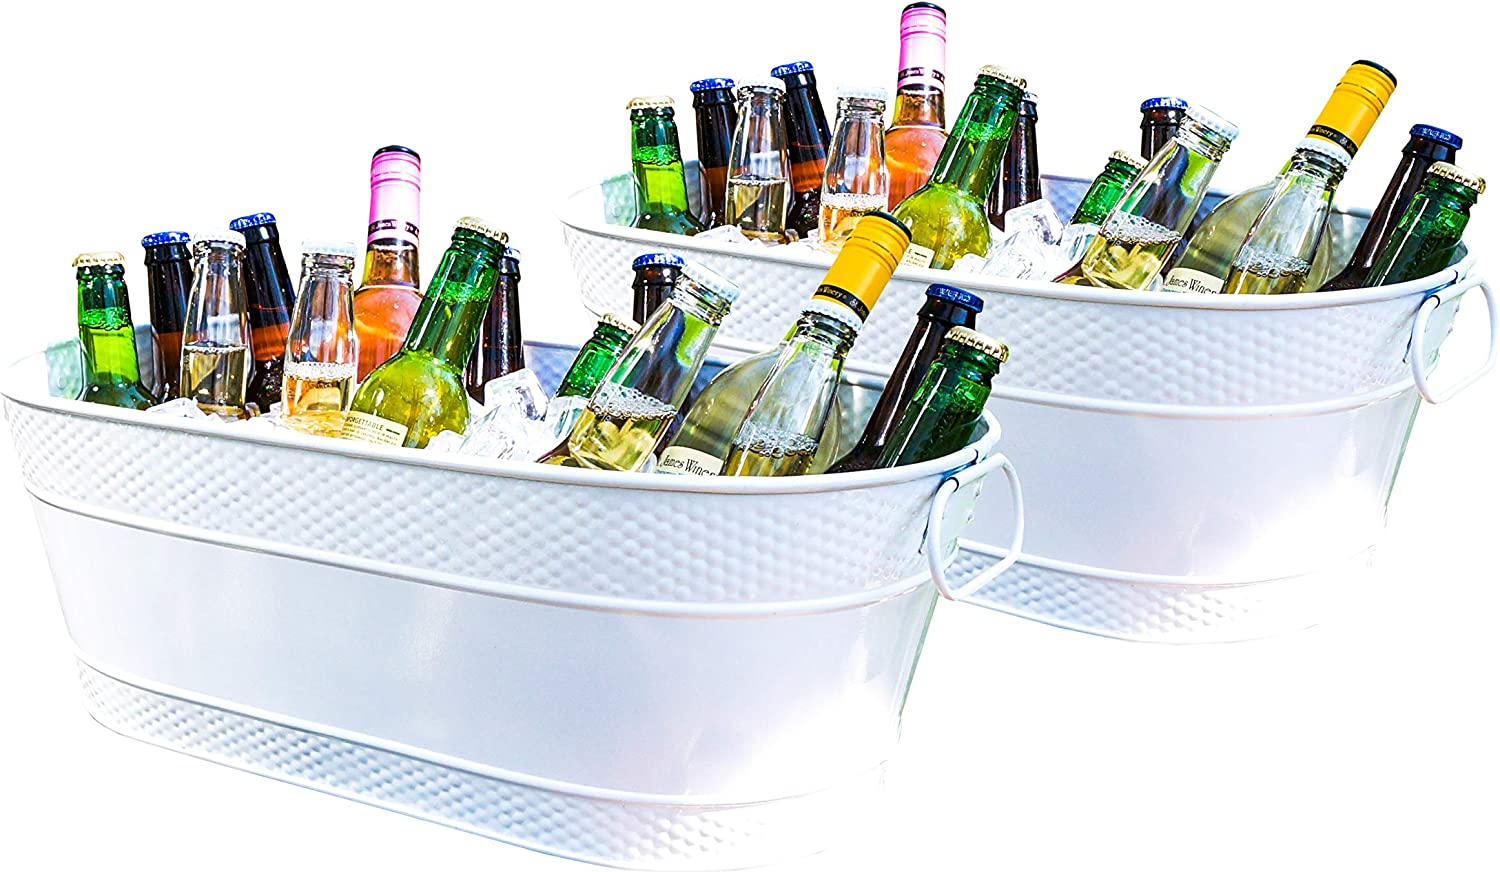 BREKX Colt White Hammered Galvanized Beverage Tubs, Rust-Resistant and Leak-Proof Ice and Drink Bucket with Handles, 15 Quarts, Set of 2